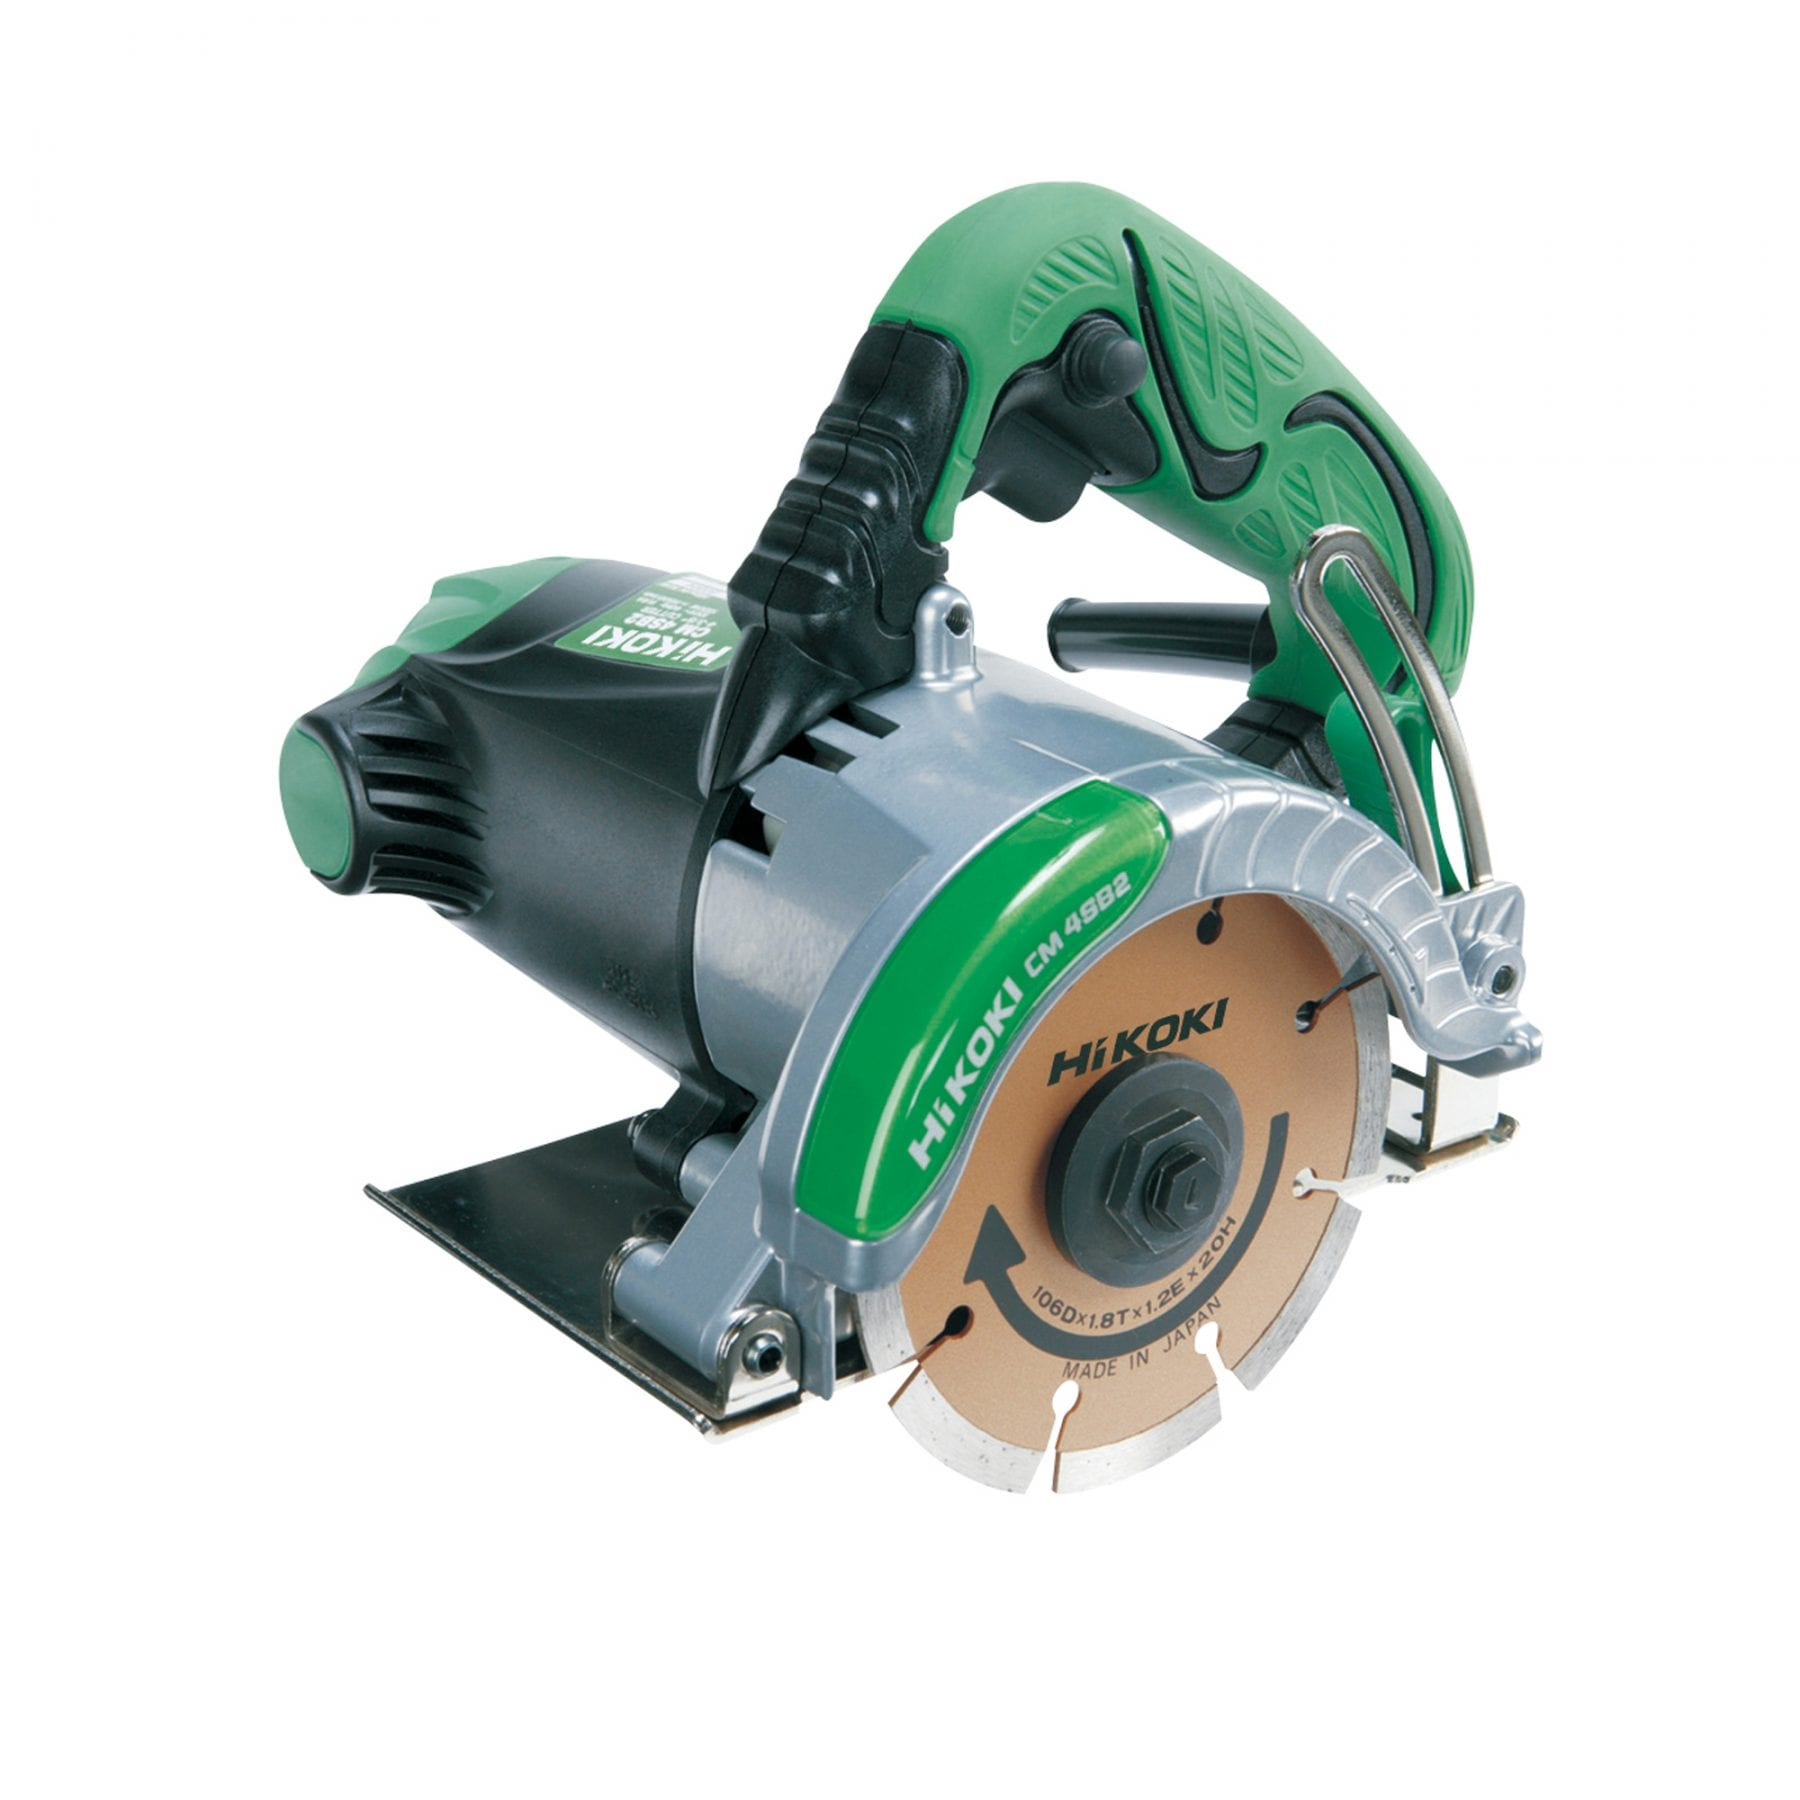 110mm Tile / Concrete Cutter - HiKOKI